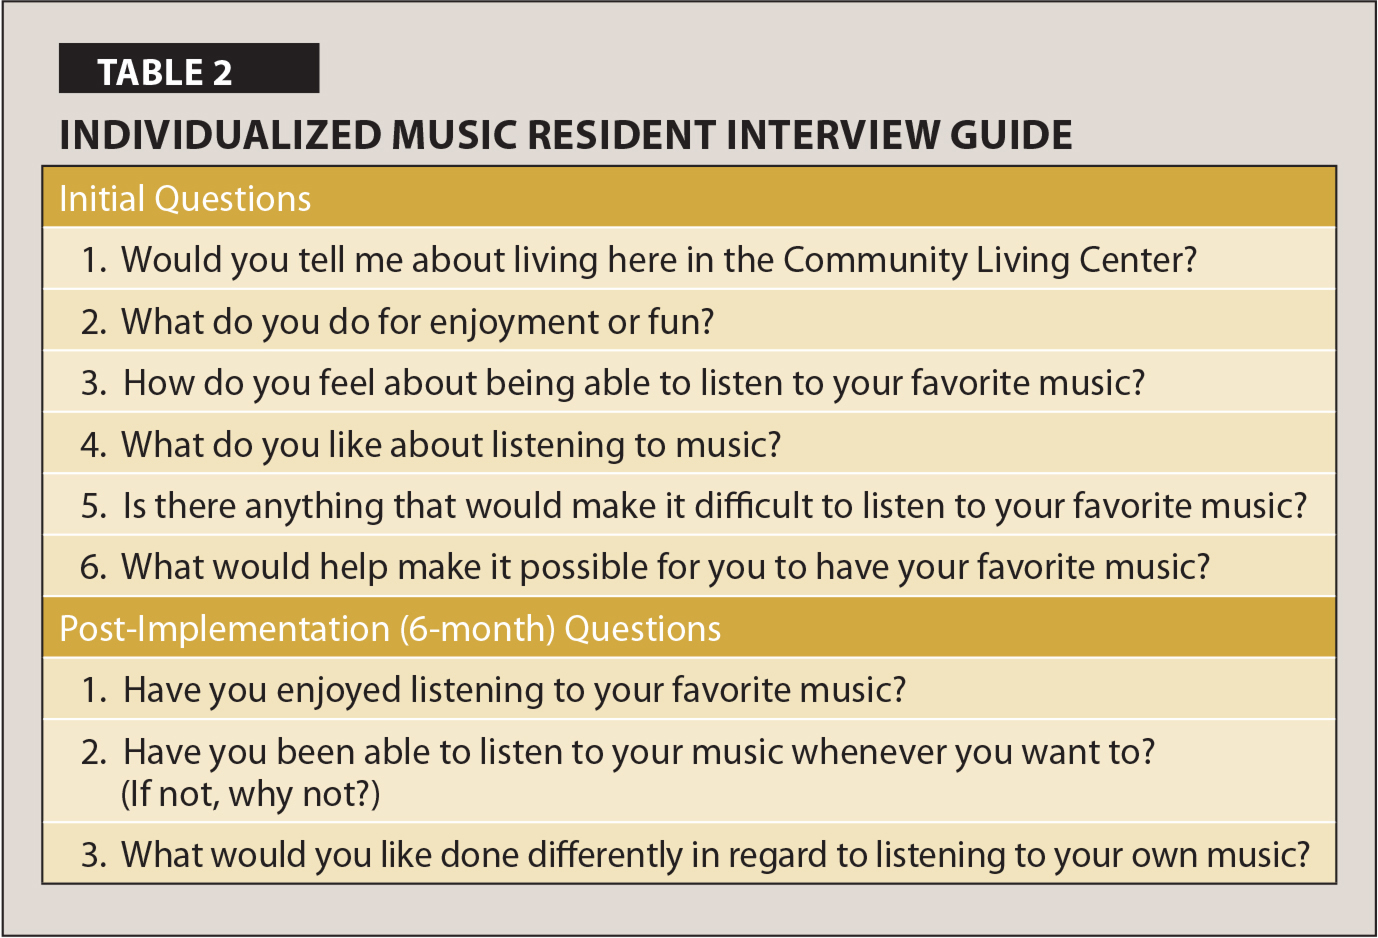 Individualized Music Resident Interview Guide